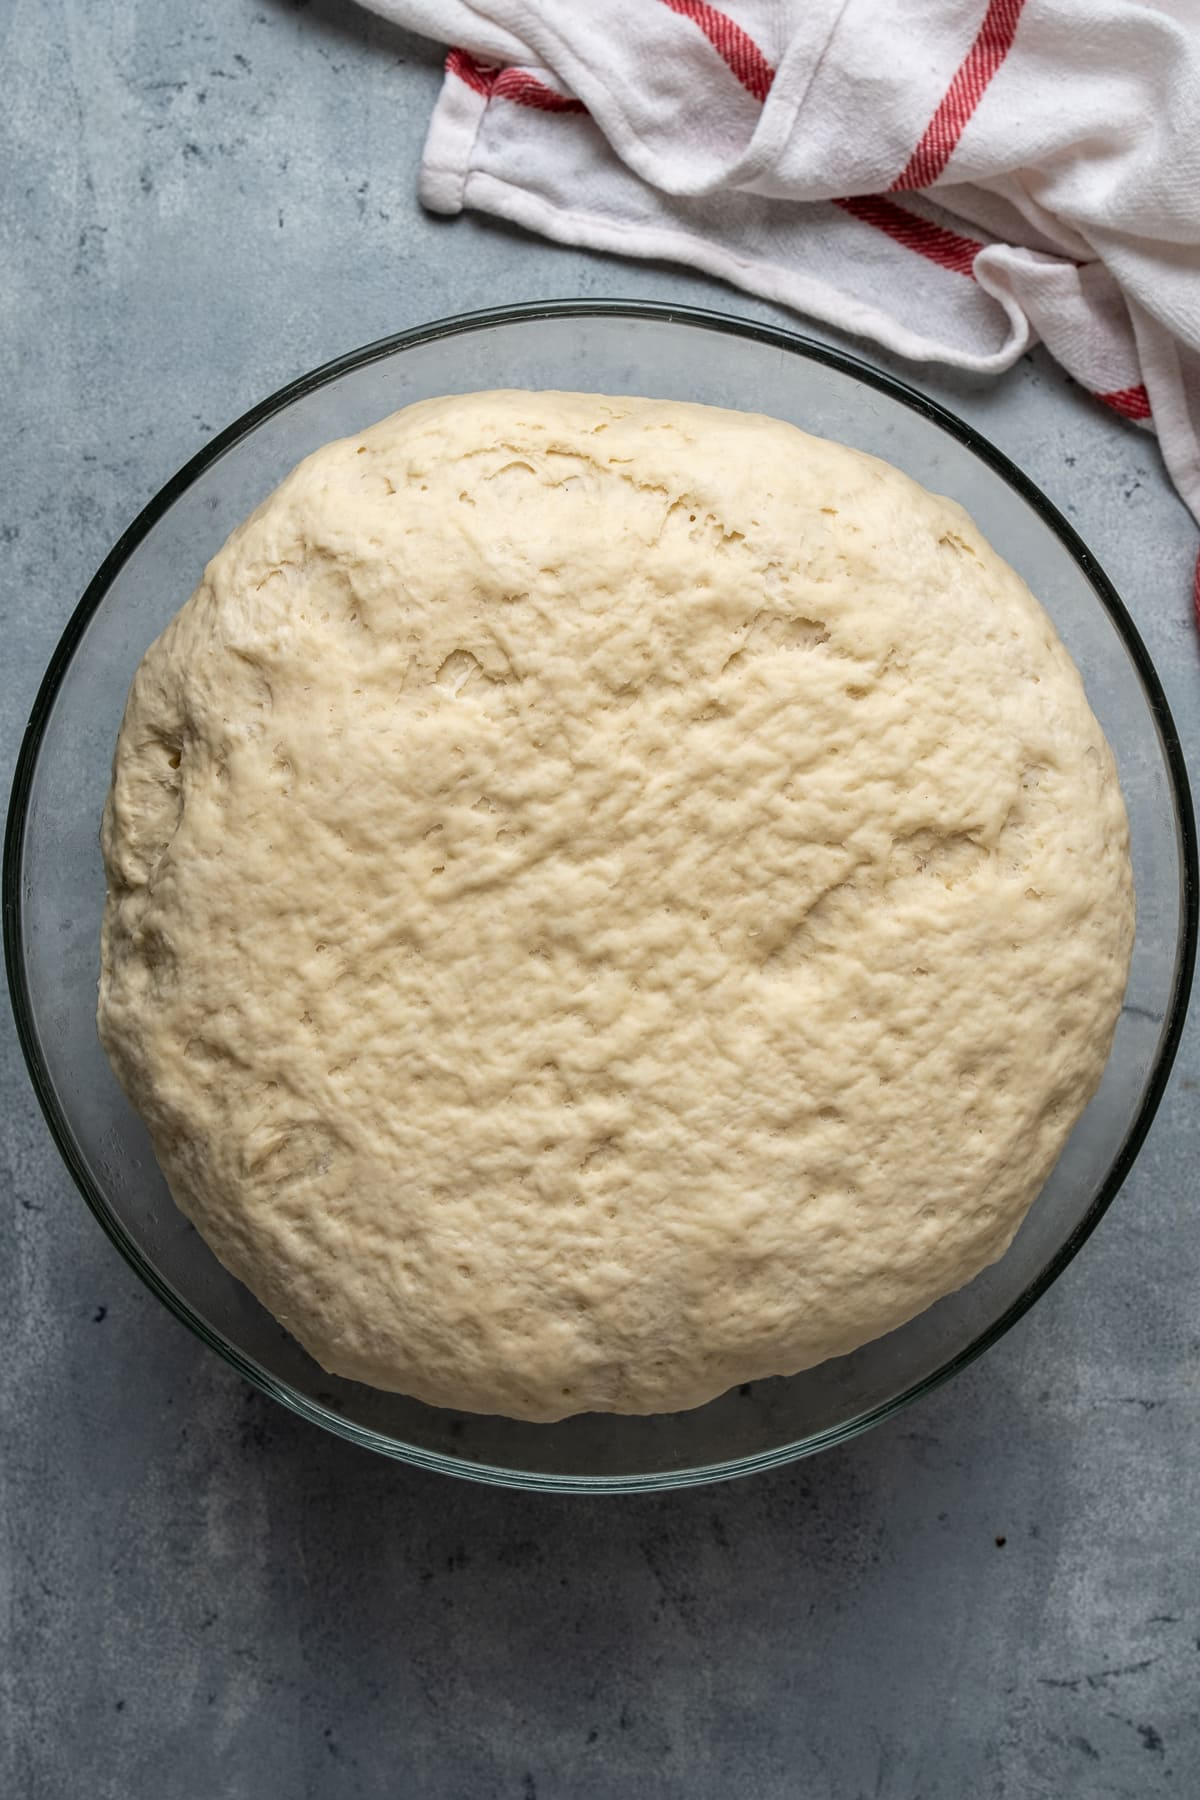 The dough doubled in size in a glass mixing bowl on a grey background.